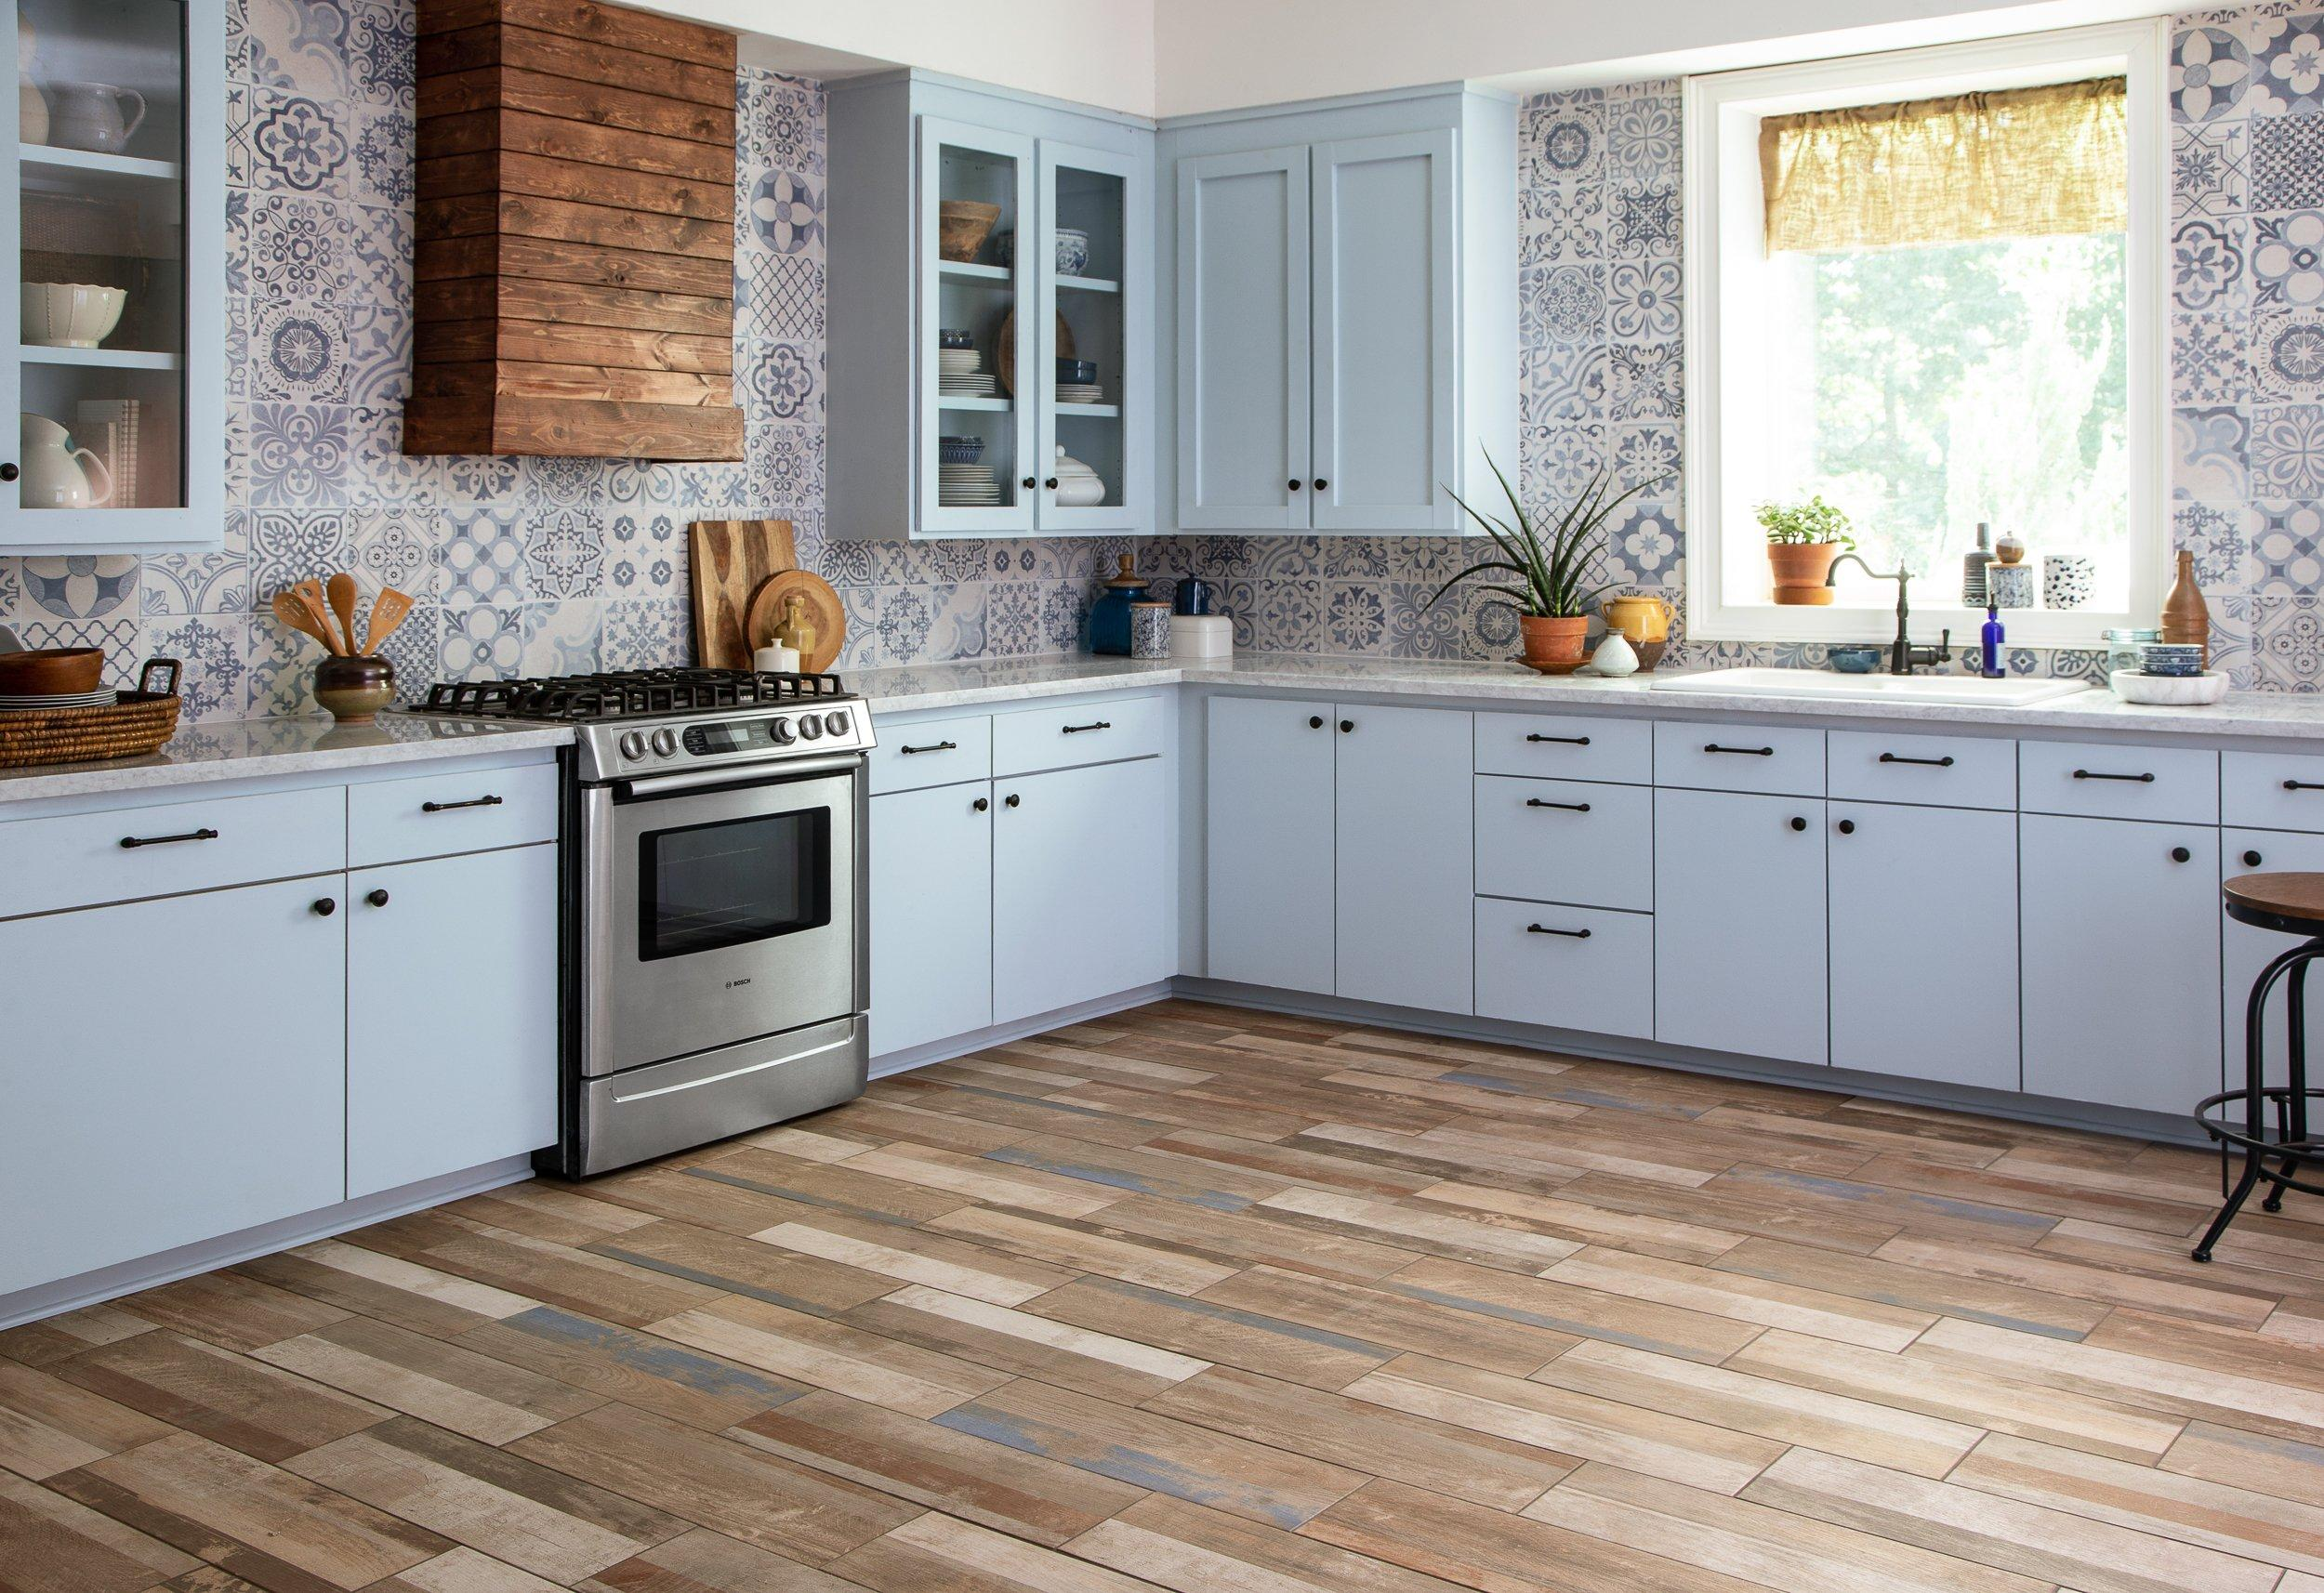 ... Kitchen 15: Albion Harbor Multi Wood Plank Ceramic Tile, Skyros  Decorative Blanco ...